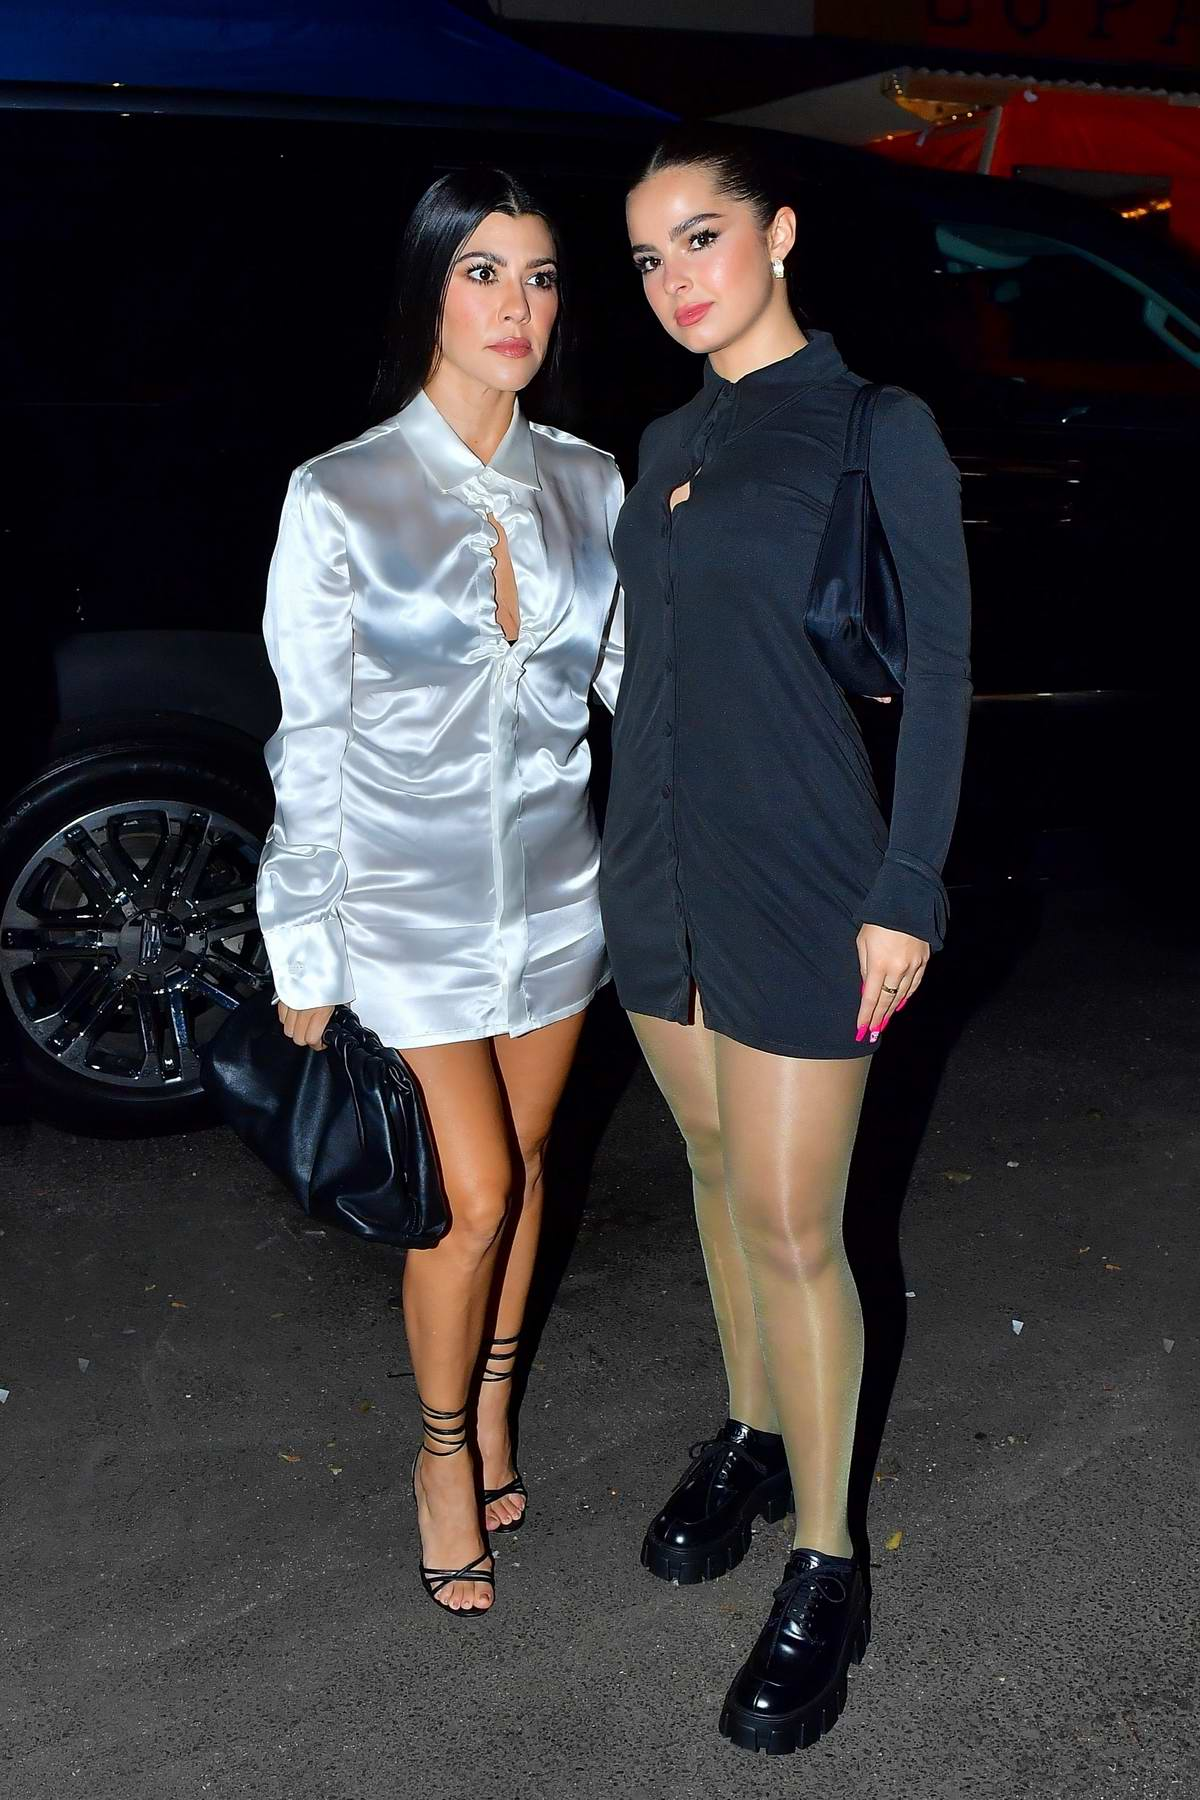 Addison Rae and Kourtney Kardashian look striking as they step out for dinner in New York City